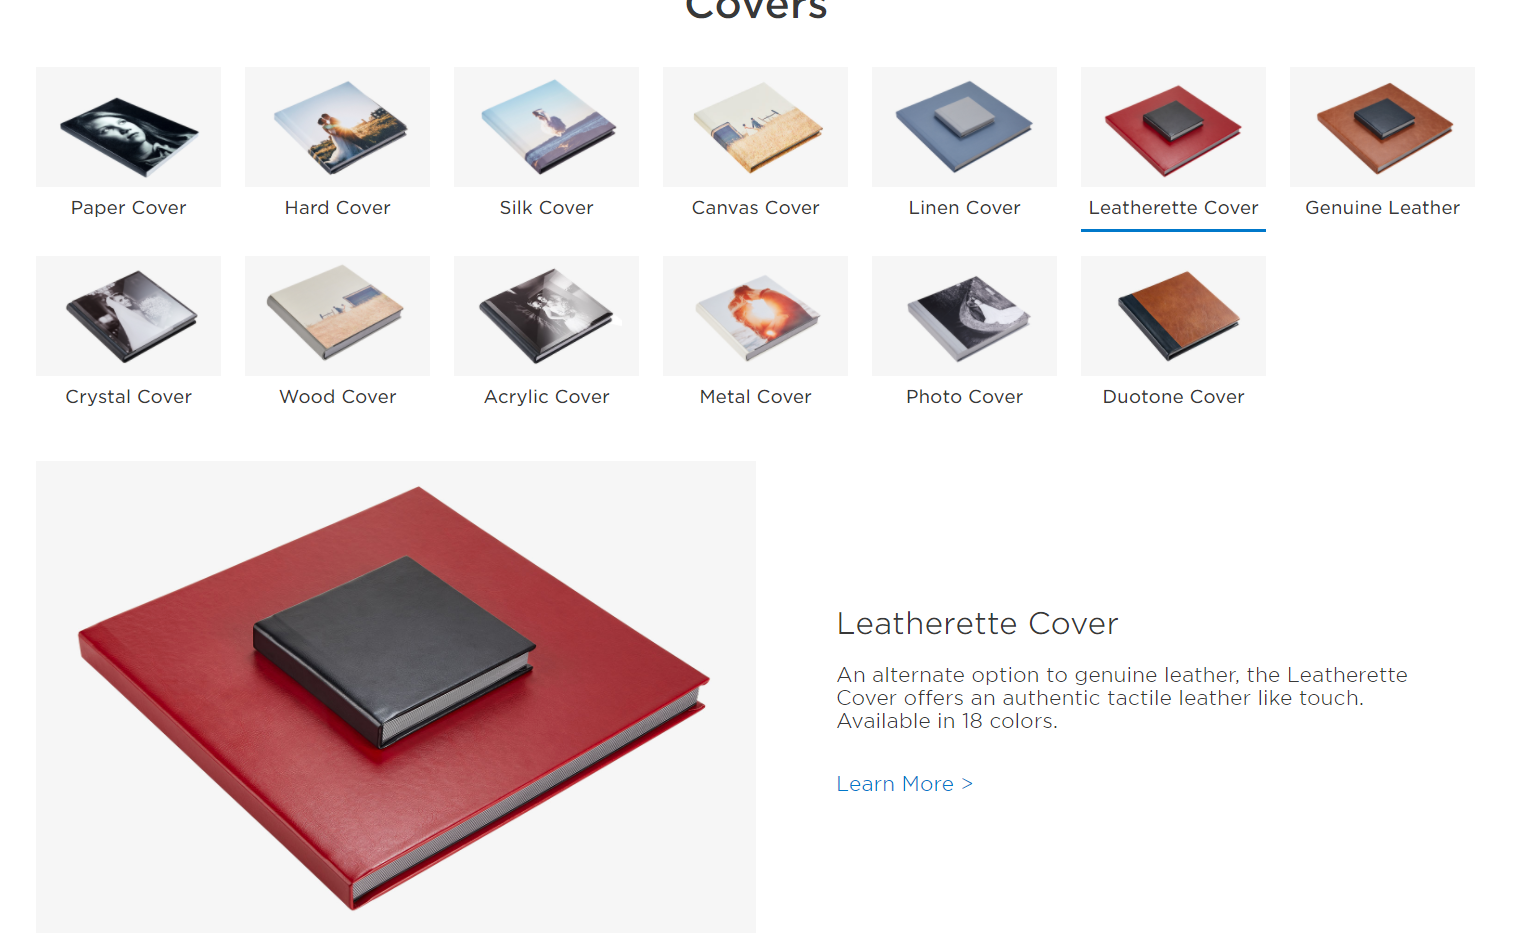 6_Vegan Leather Cover.png